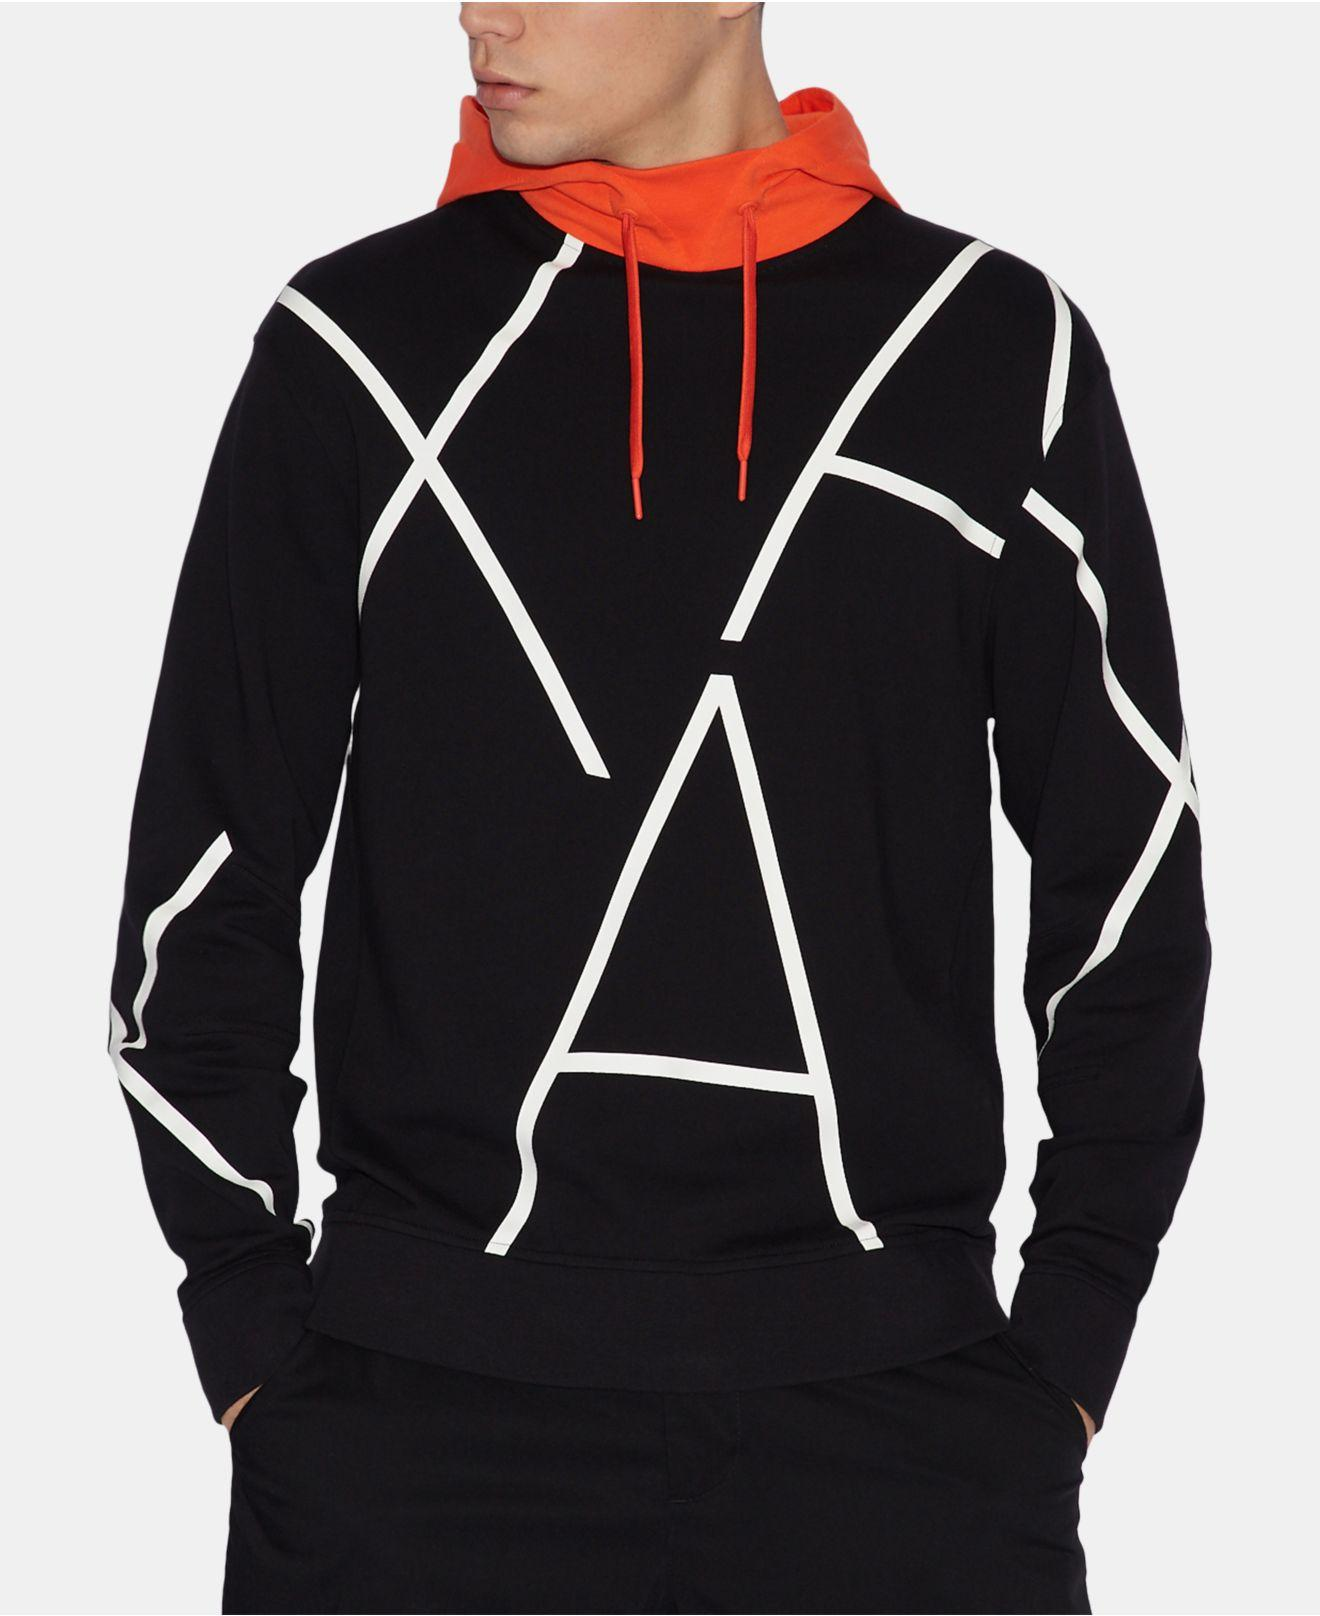 889f98735d60db Armani Exchange - Black Logo Hoodie for Men - Lyst. View fullscreen